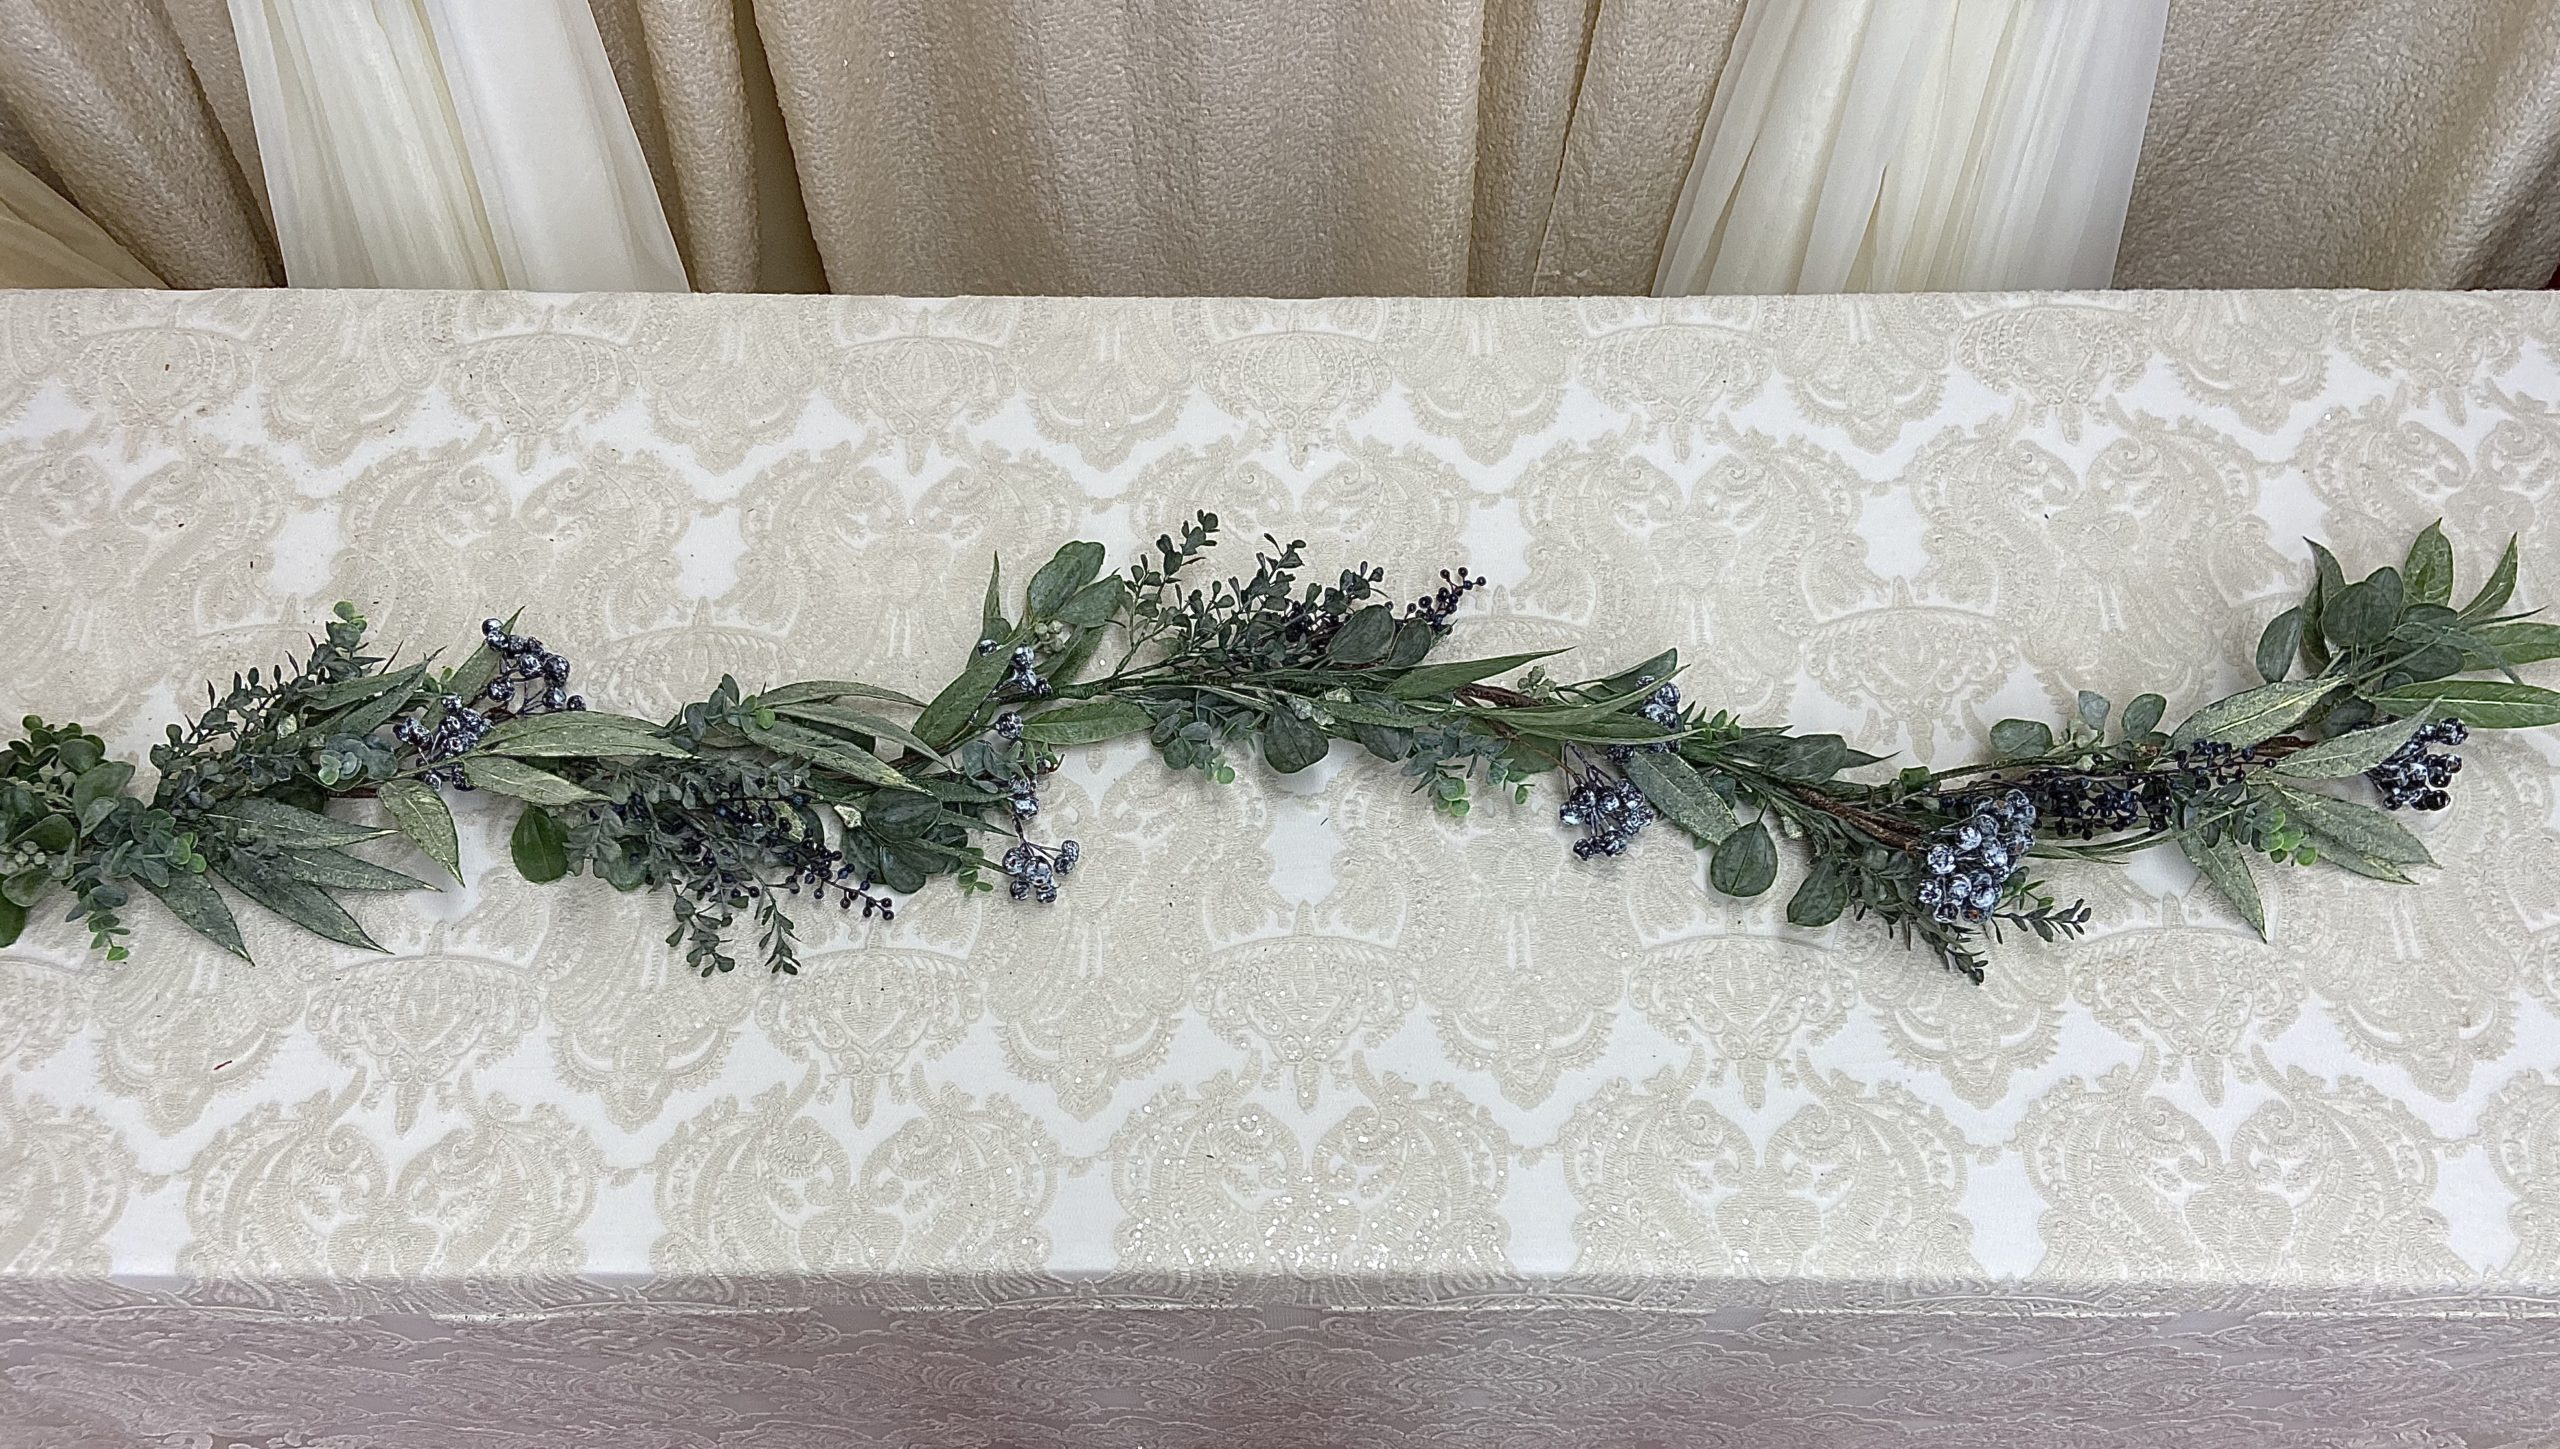 Eucalyptus Garland with Berries Image